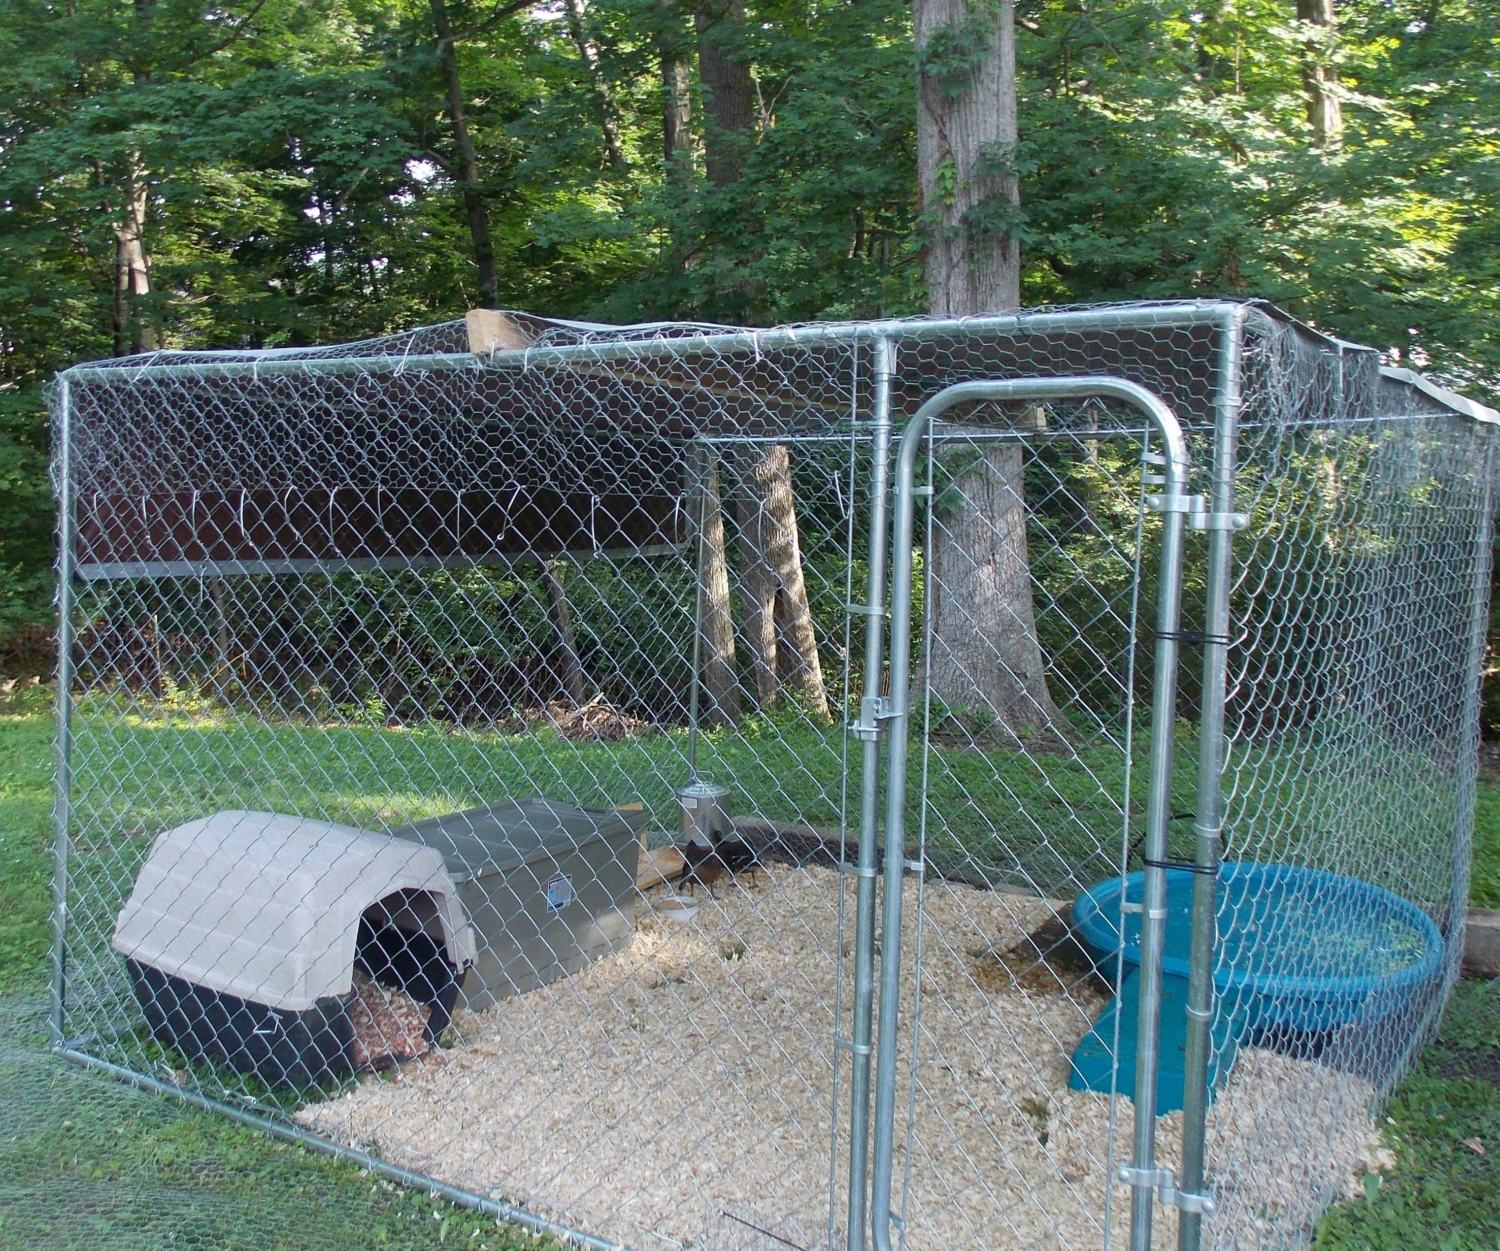 Advise on how to sell or find new home for my ducks for Duck hutch ideas